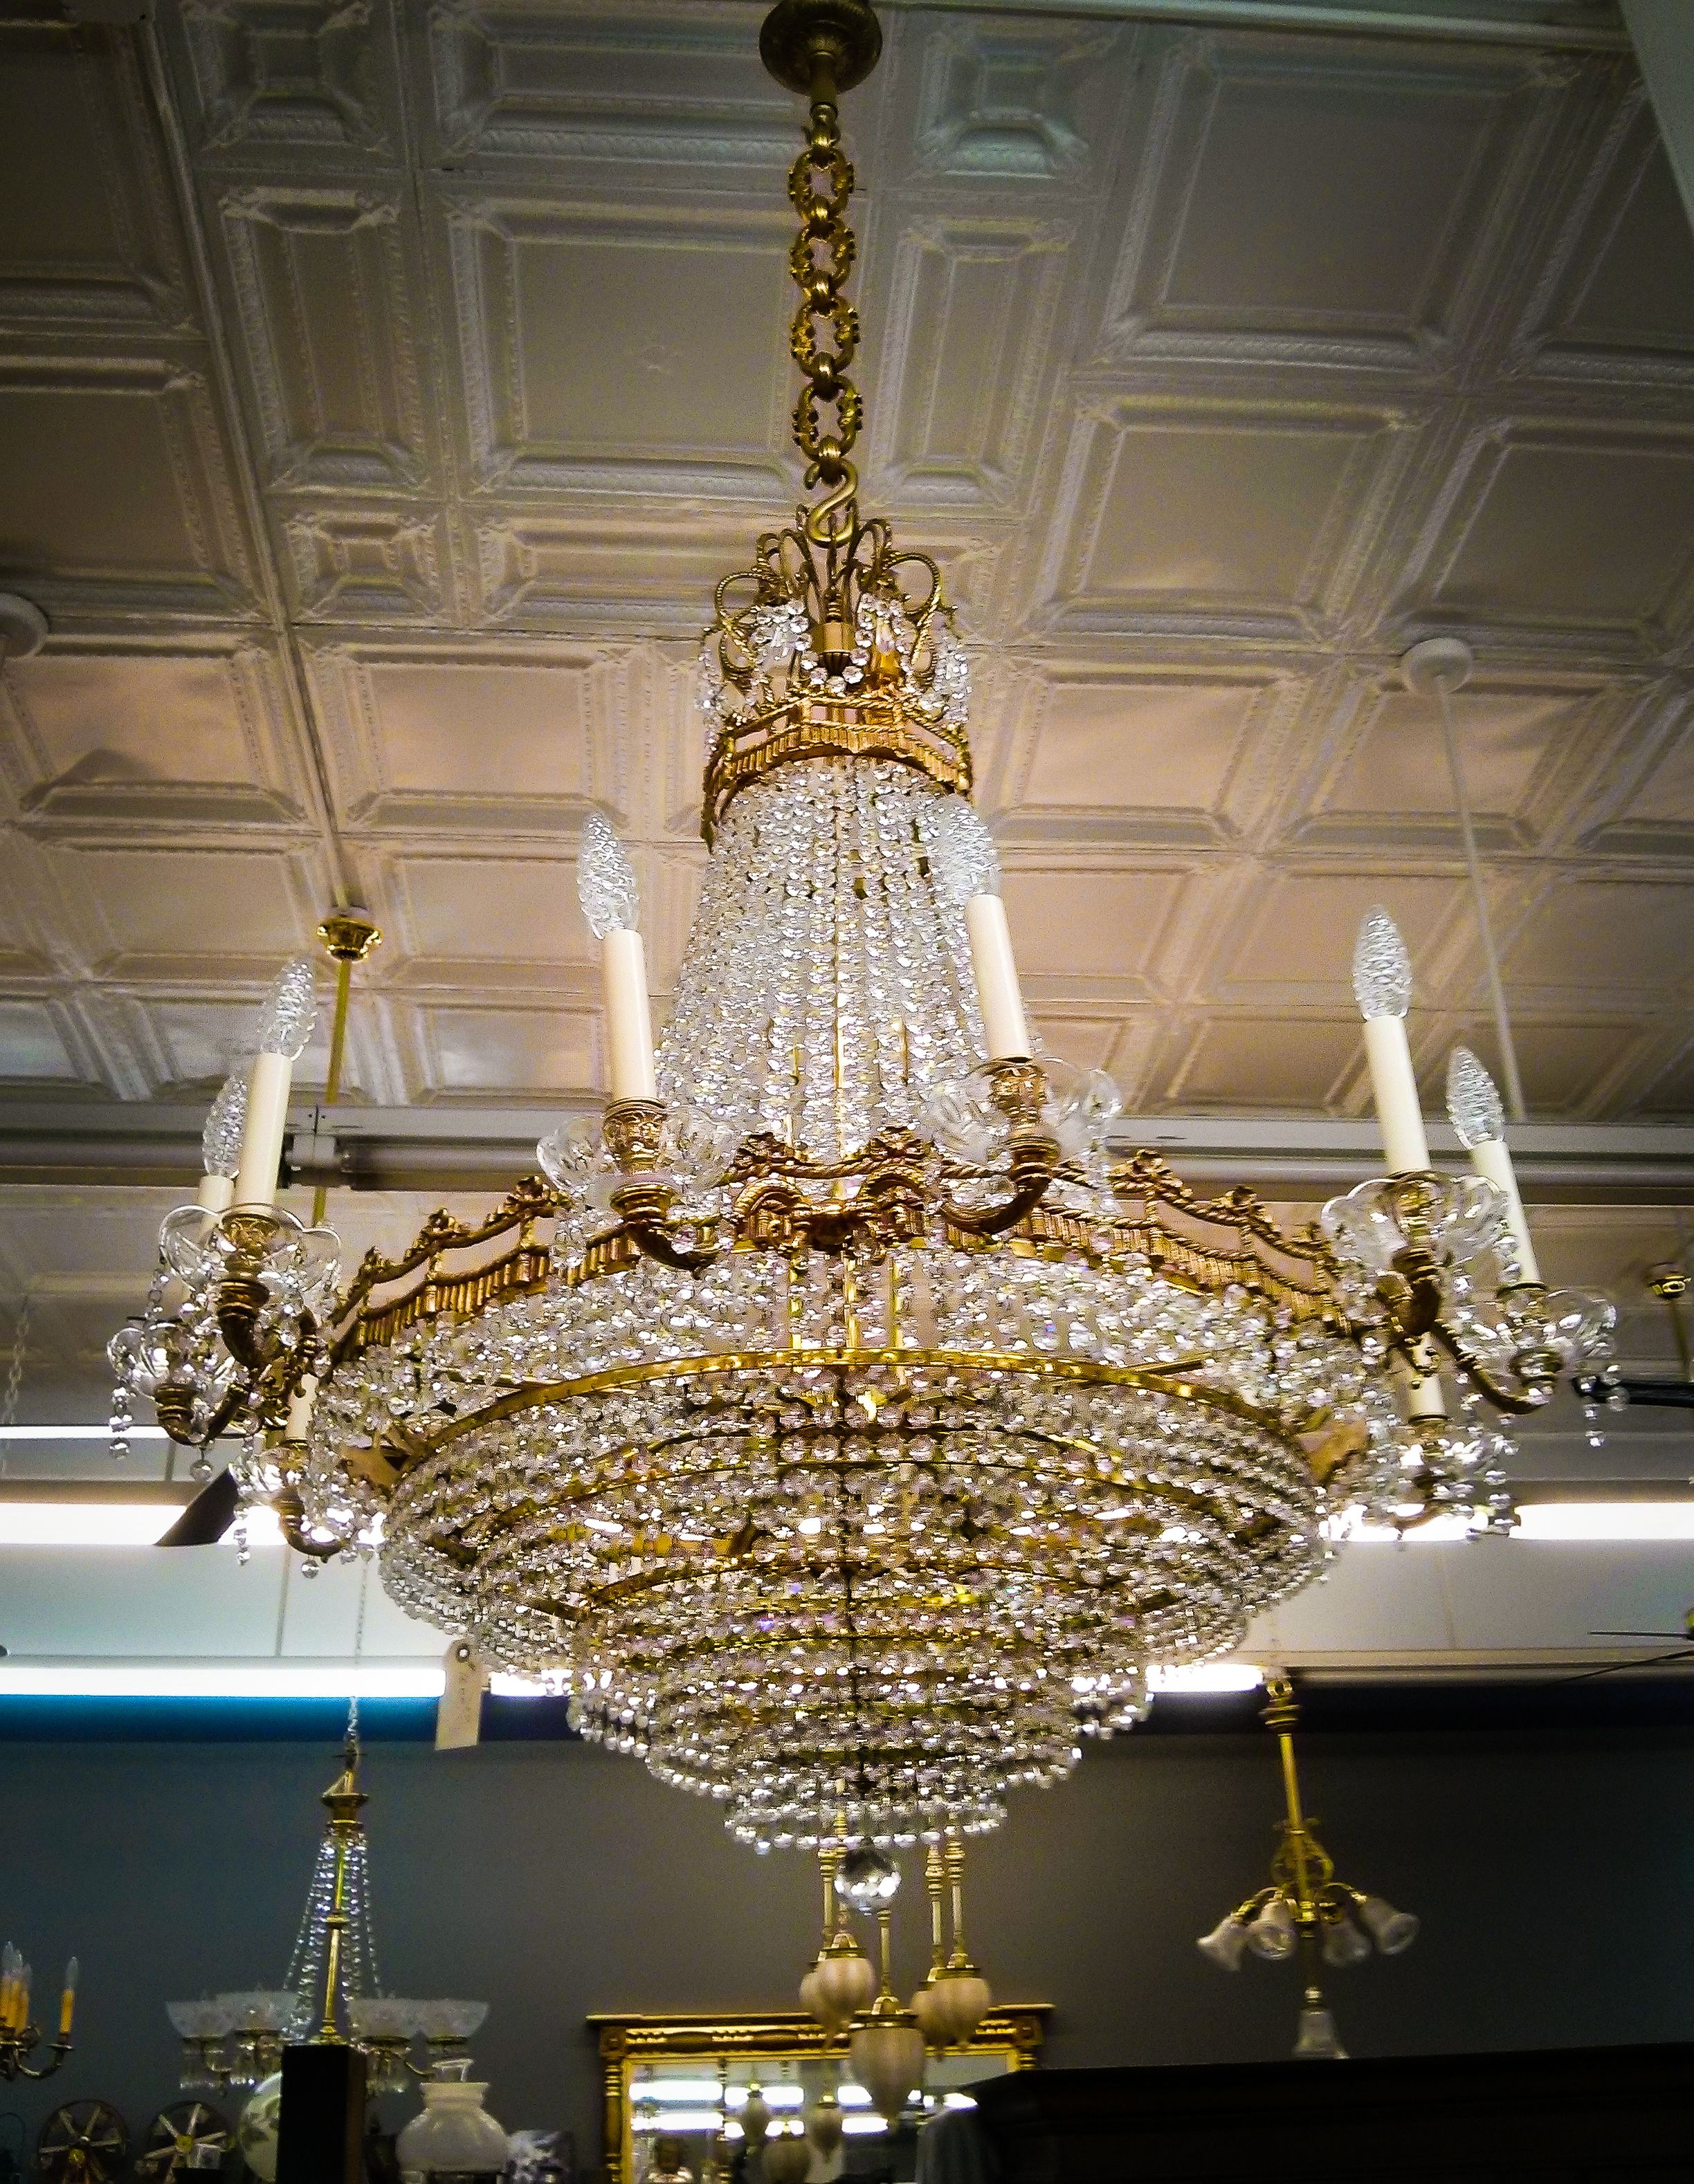 Antique Empire crystal chandelier inspired by the French Empire